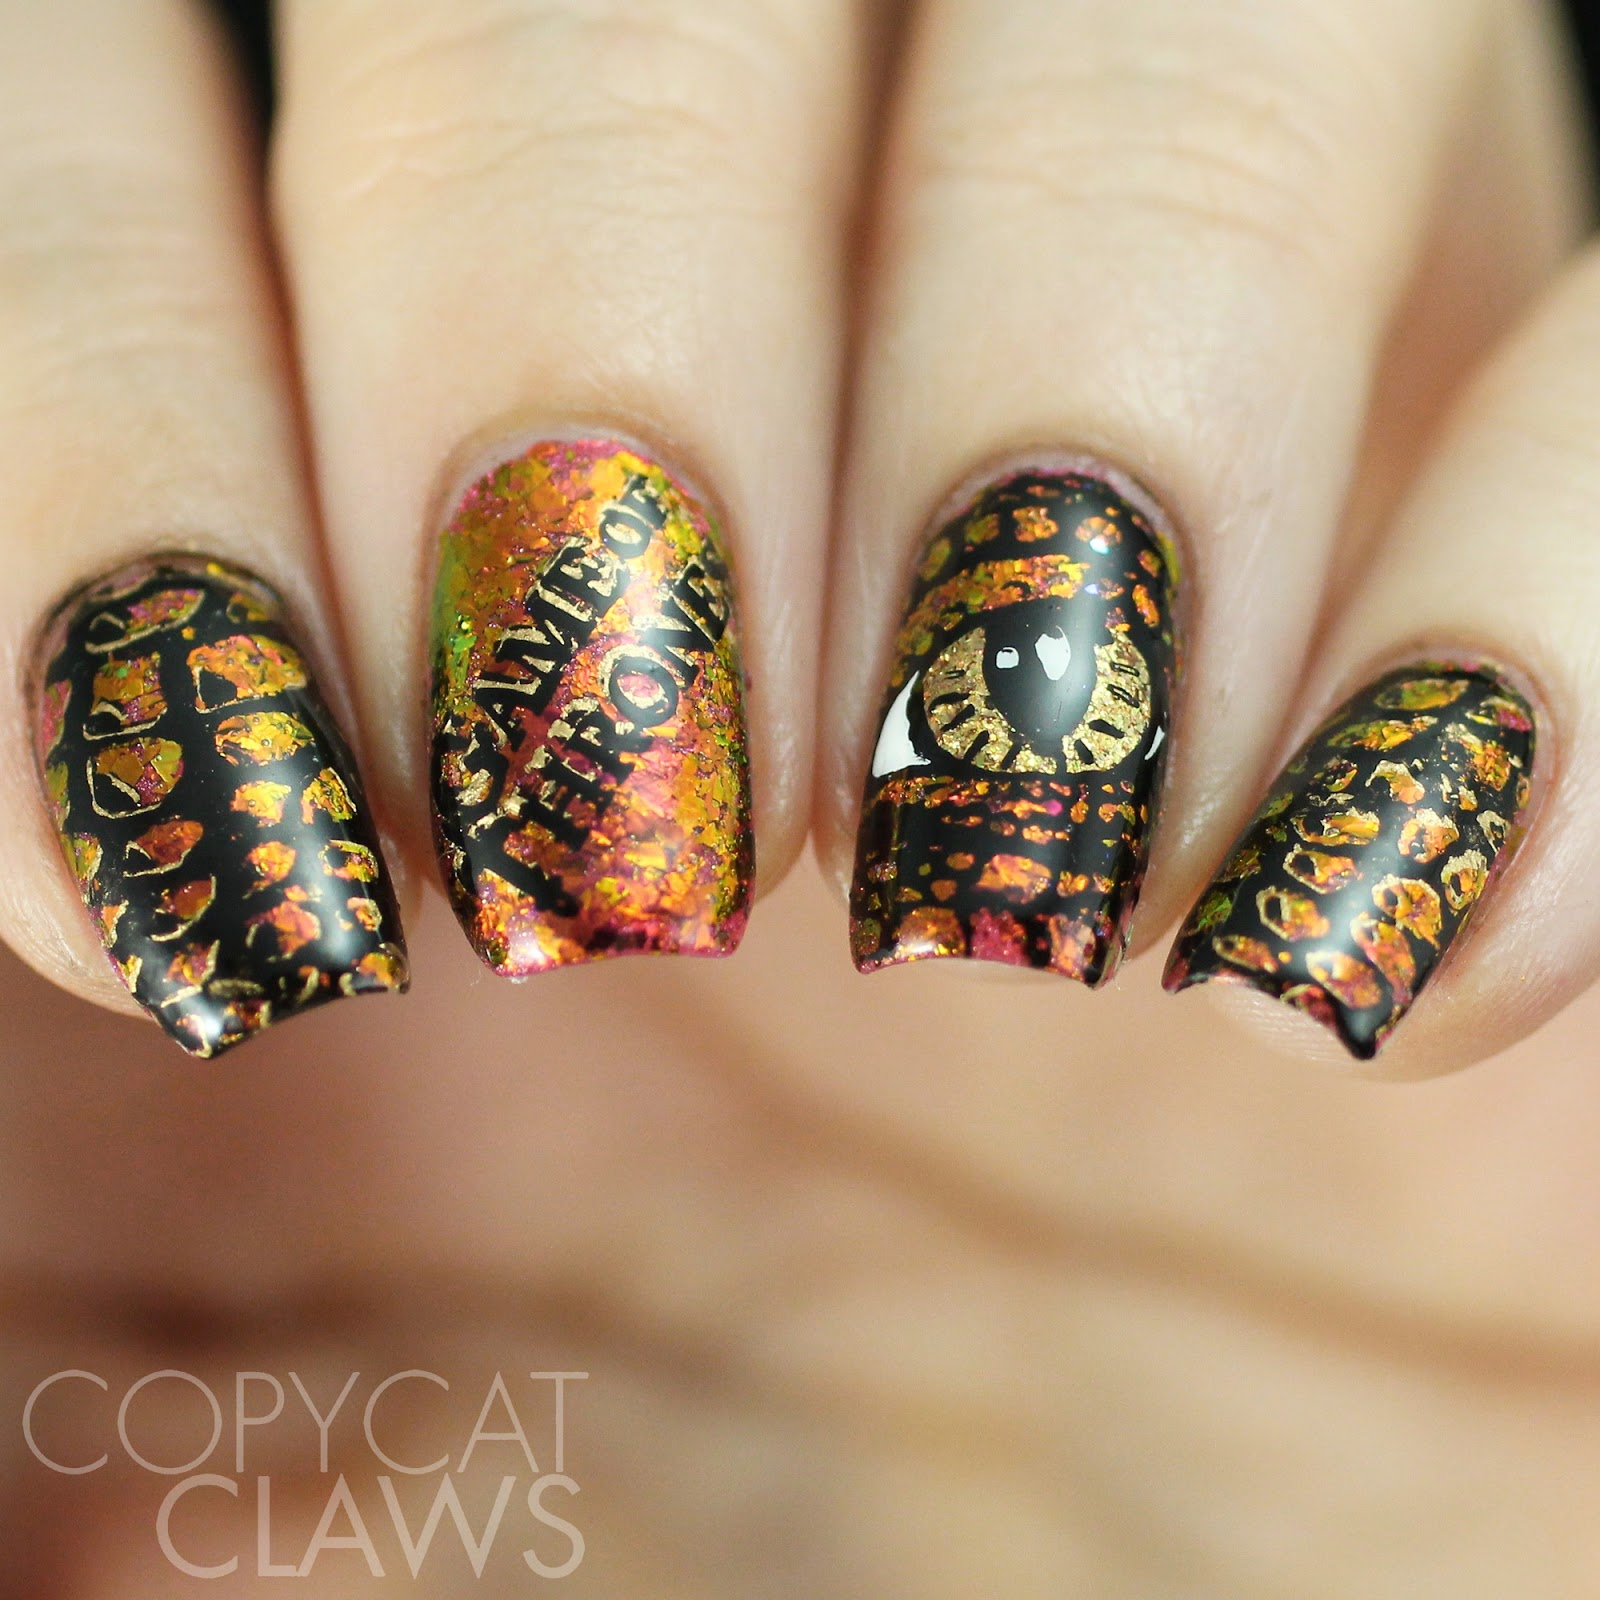 Copycat Claws: The Digit-al Dozen does Mythical Creatures - Dragons